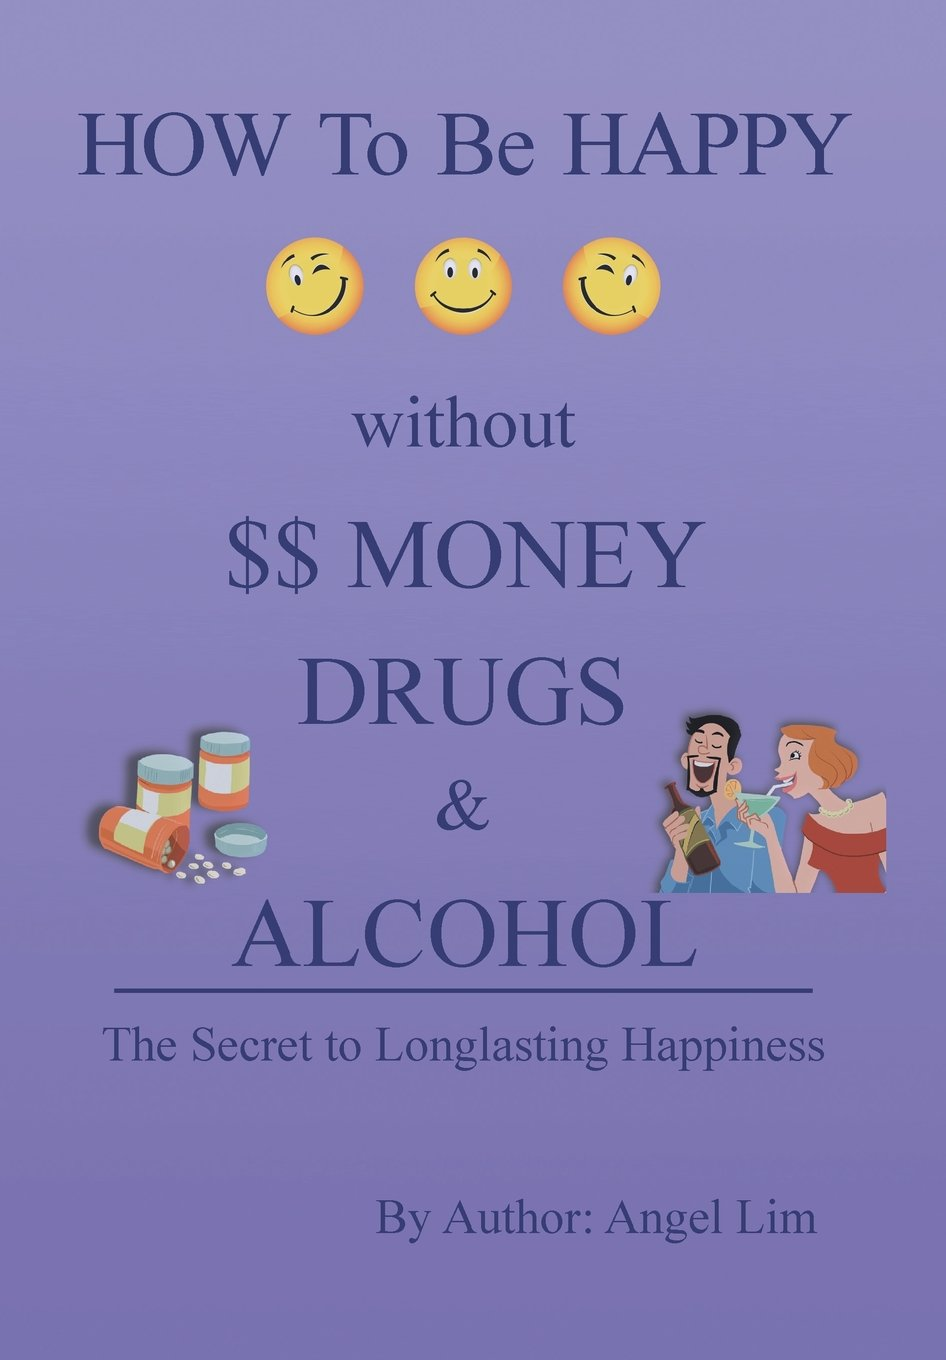 How To Be Happy Without Money, Drugs Or Alcohol: The Secrets To A  Longlasting Happiness: Angel Lim: 9781483685984: Amazon: Books